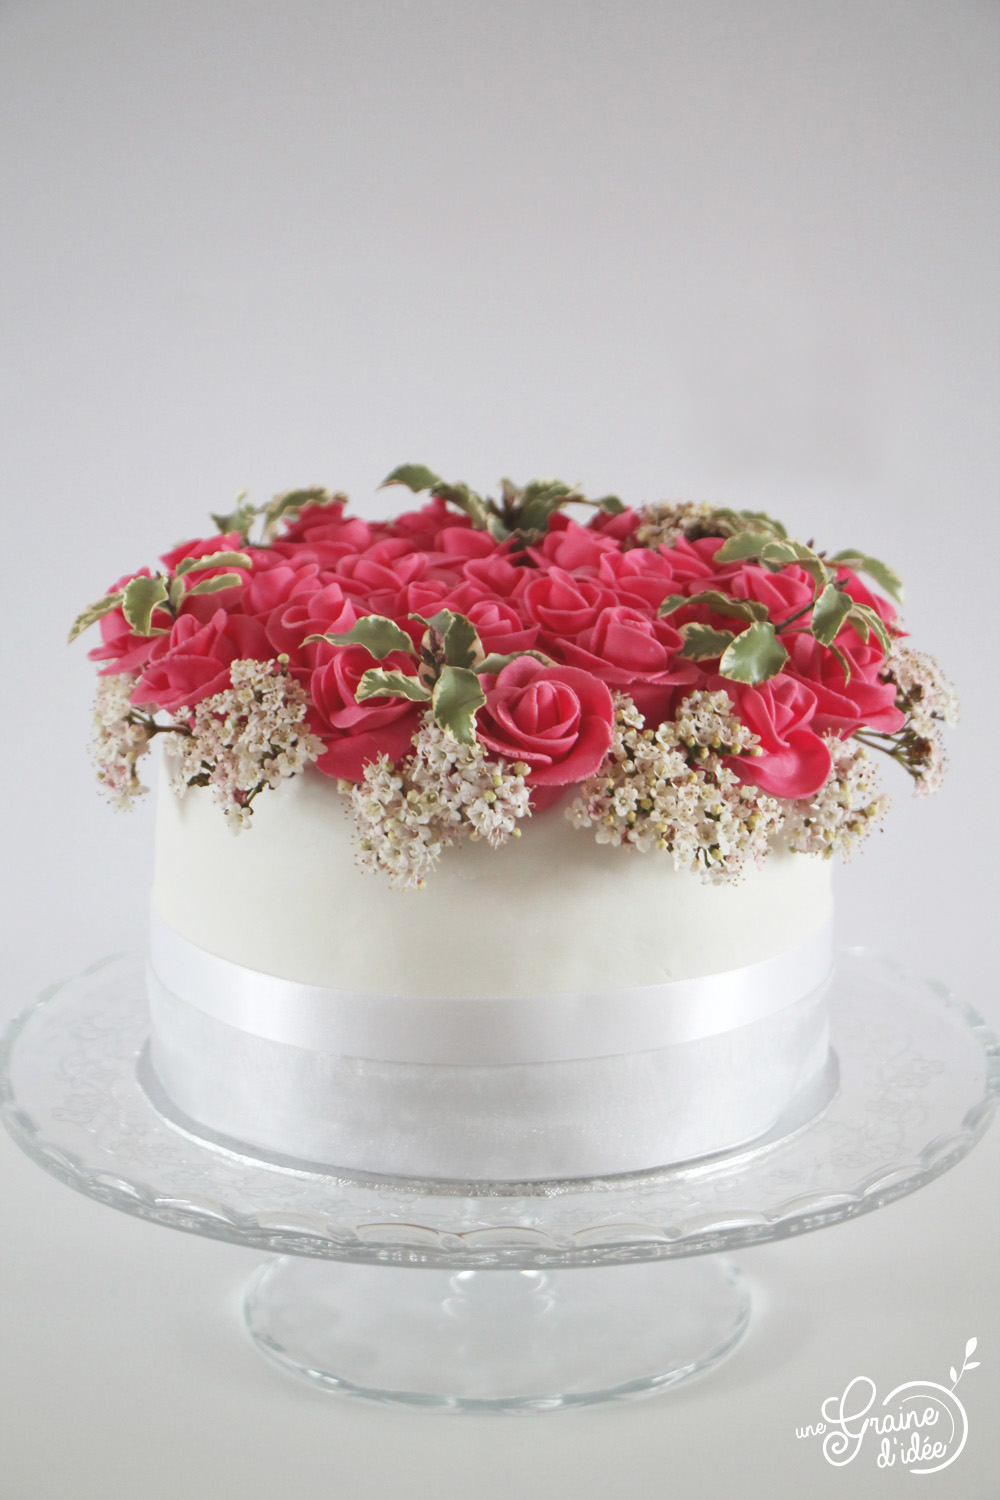 Layer Cake Bouquet De Roses Une Graine D Idee